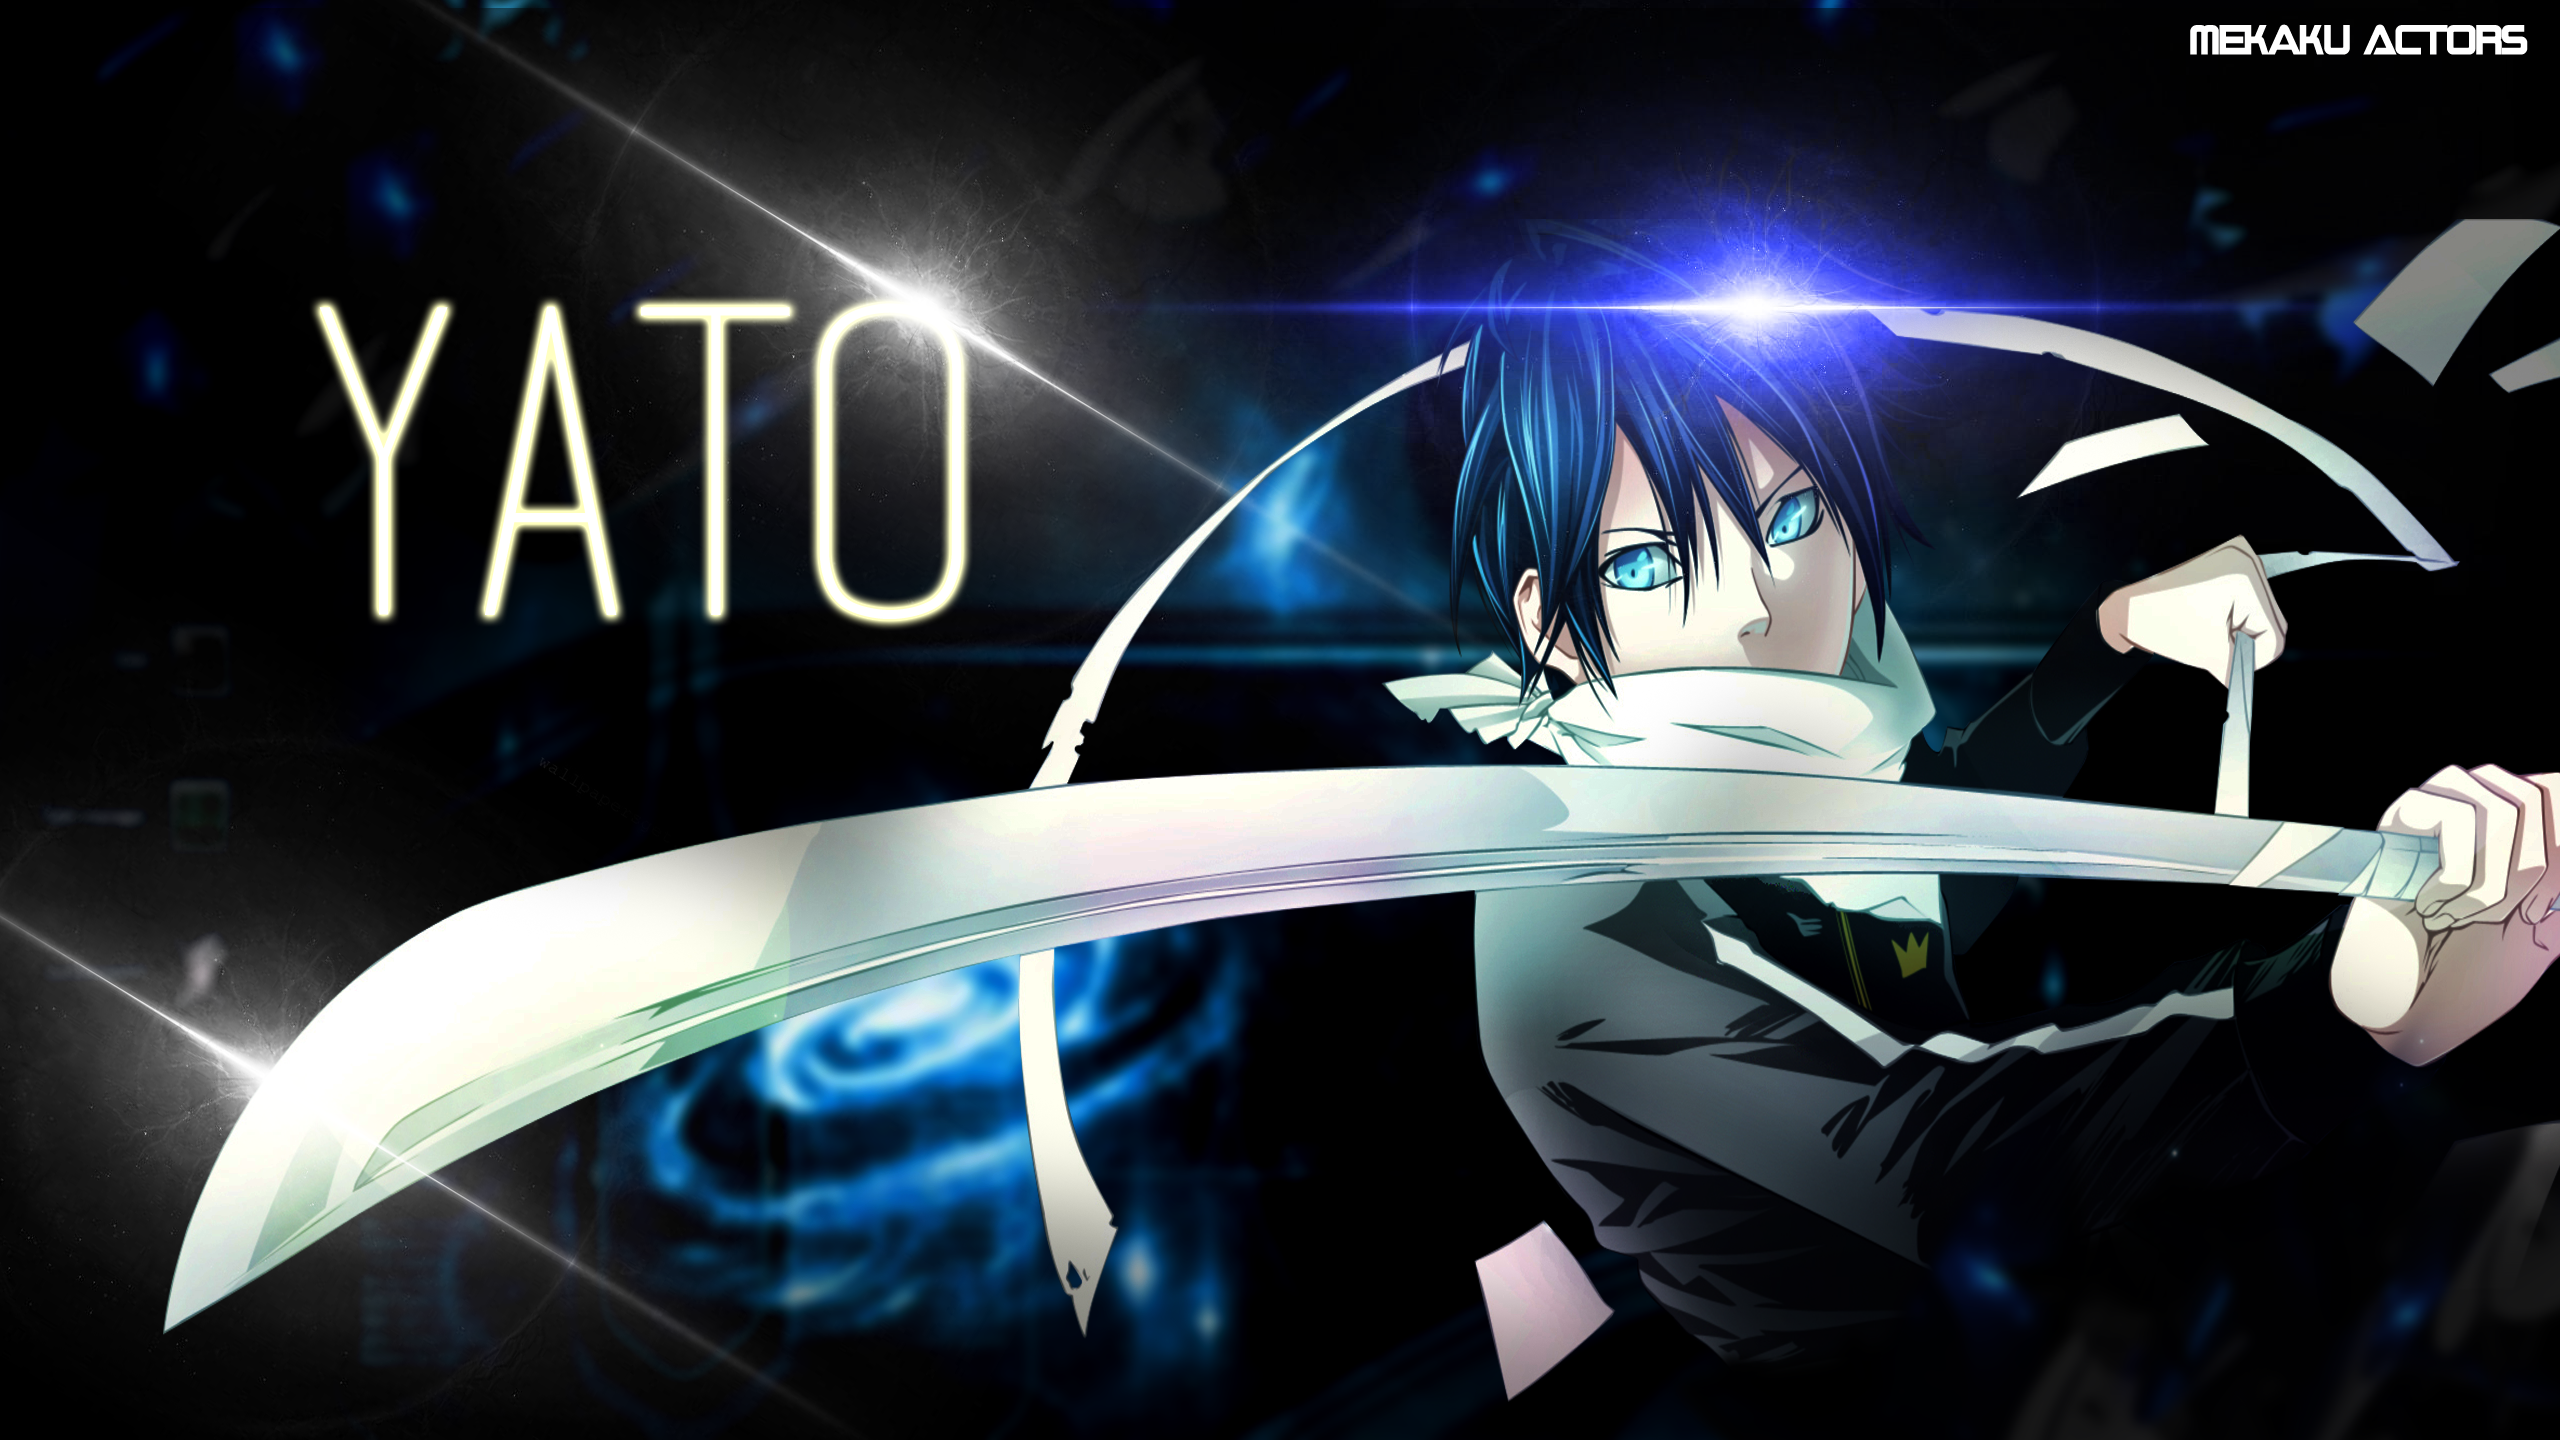 imagen noragami wallpaper by - photo #26